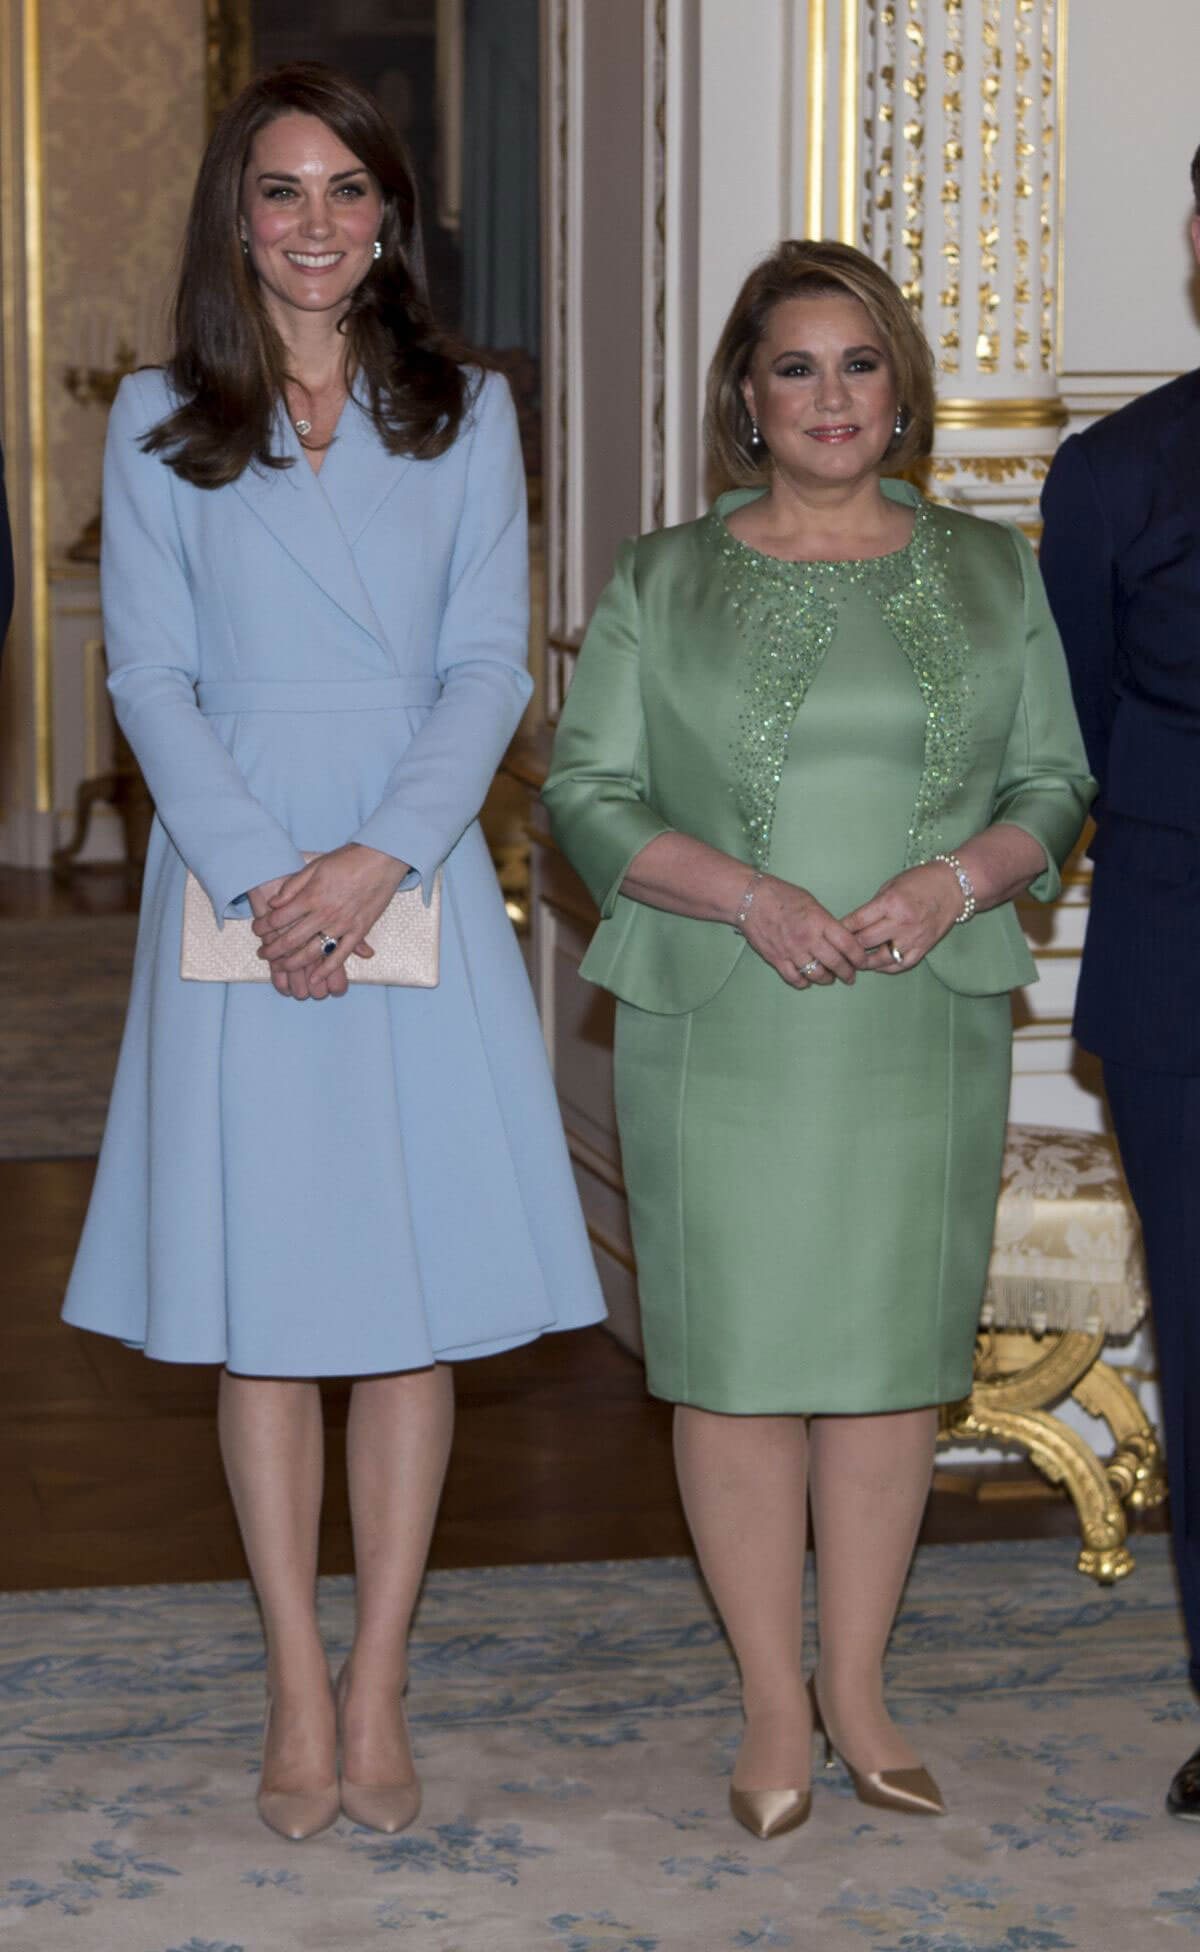 Kate Middleton at Grand Ducal Palace in Luxembourg